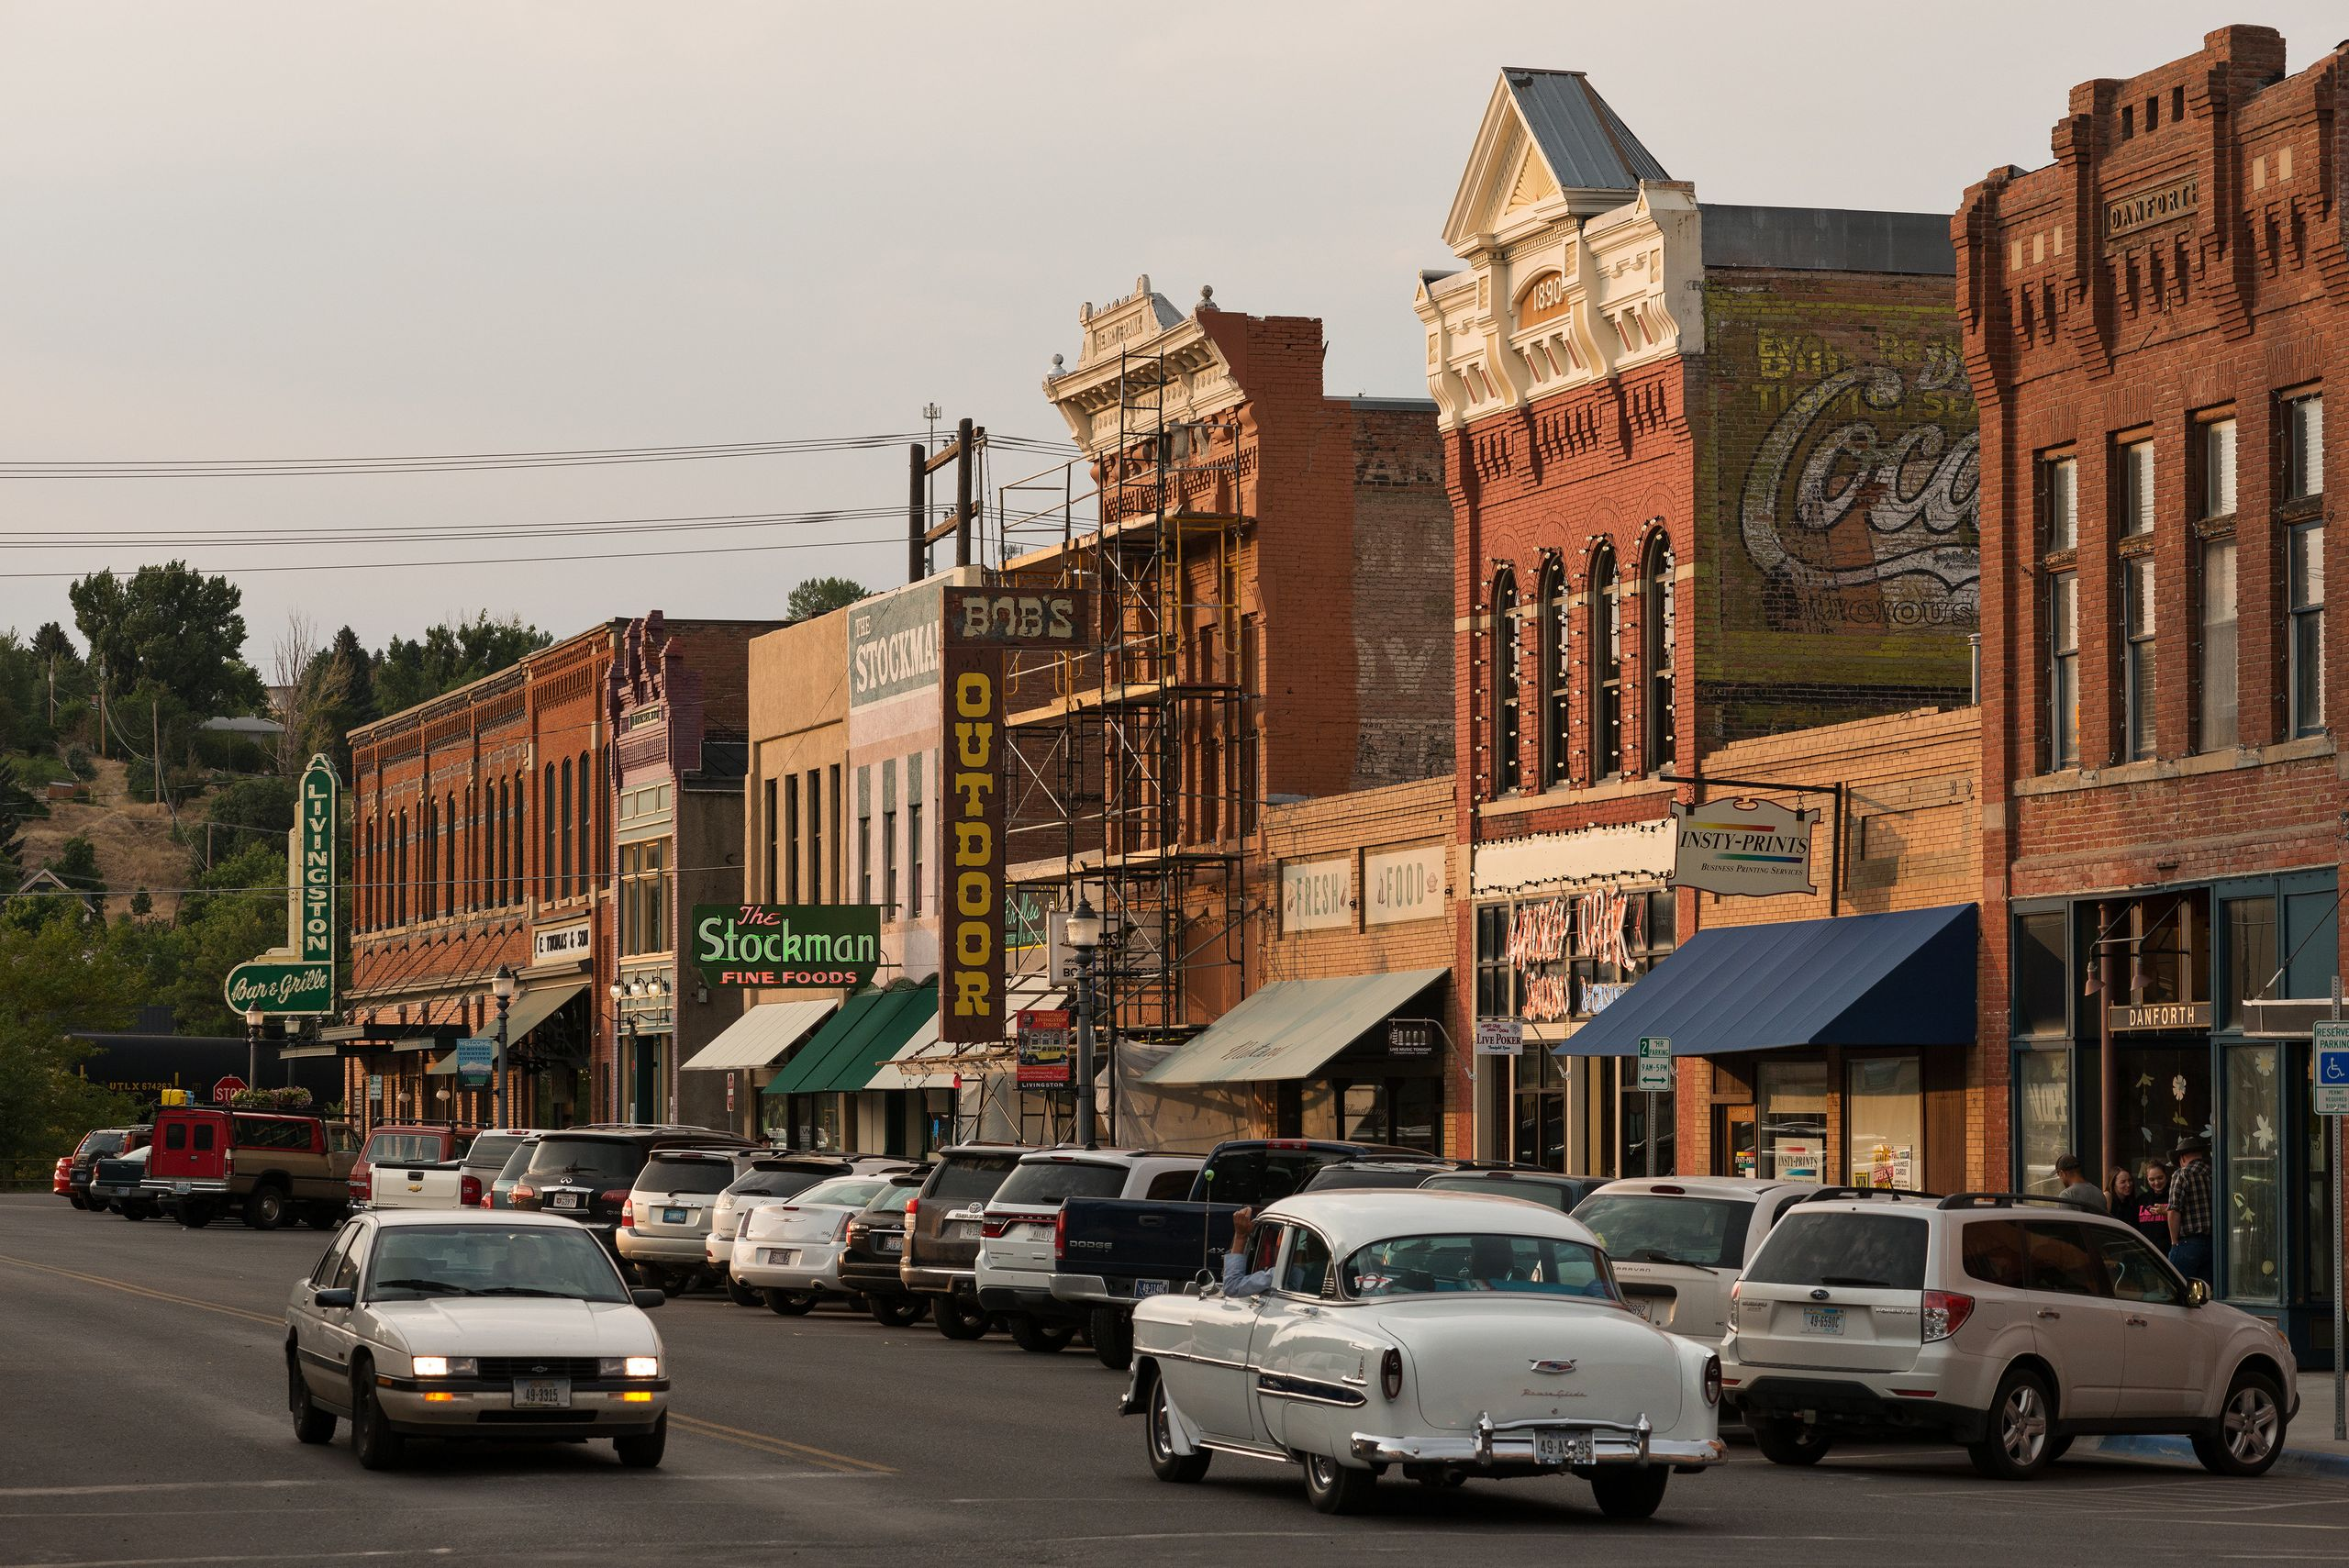 Livingston boasts a historic and thriving downtown. It caters to tourists with landmarks like the restored 1902 Northern